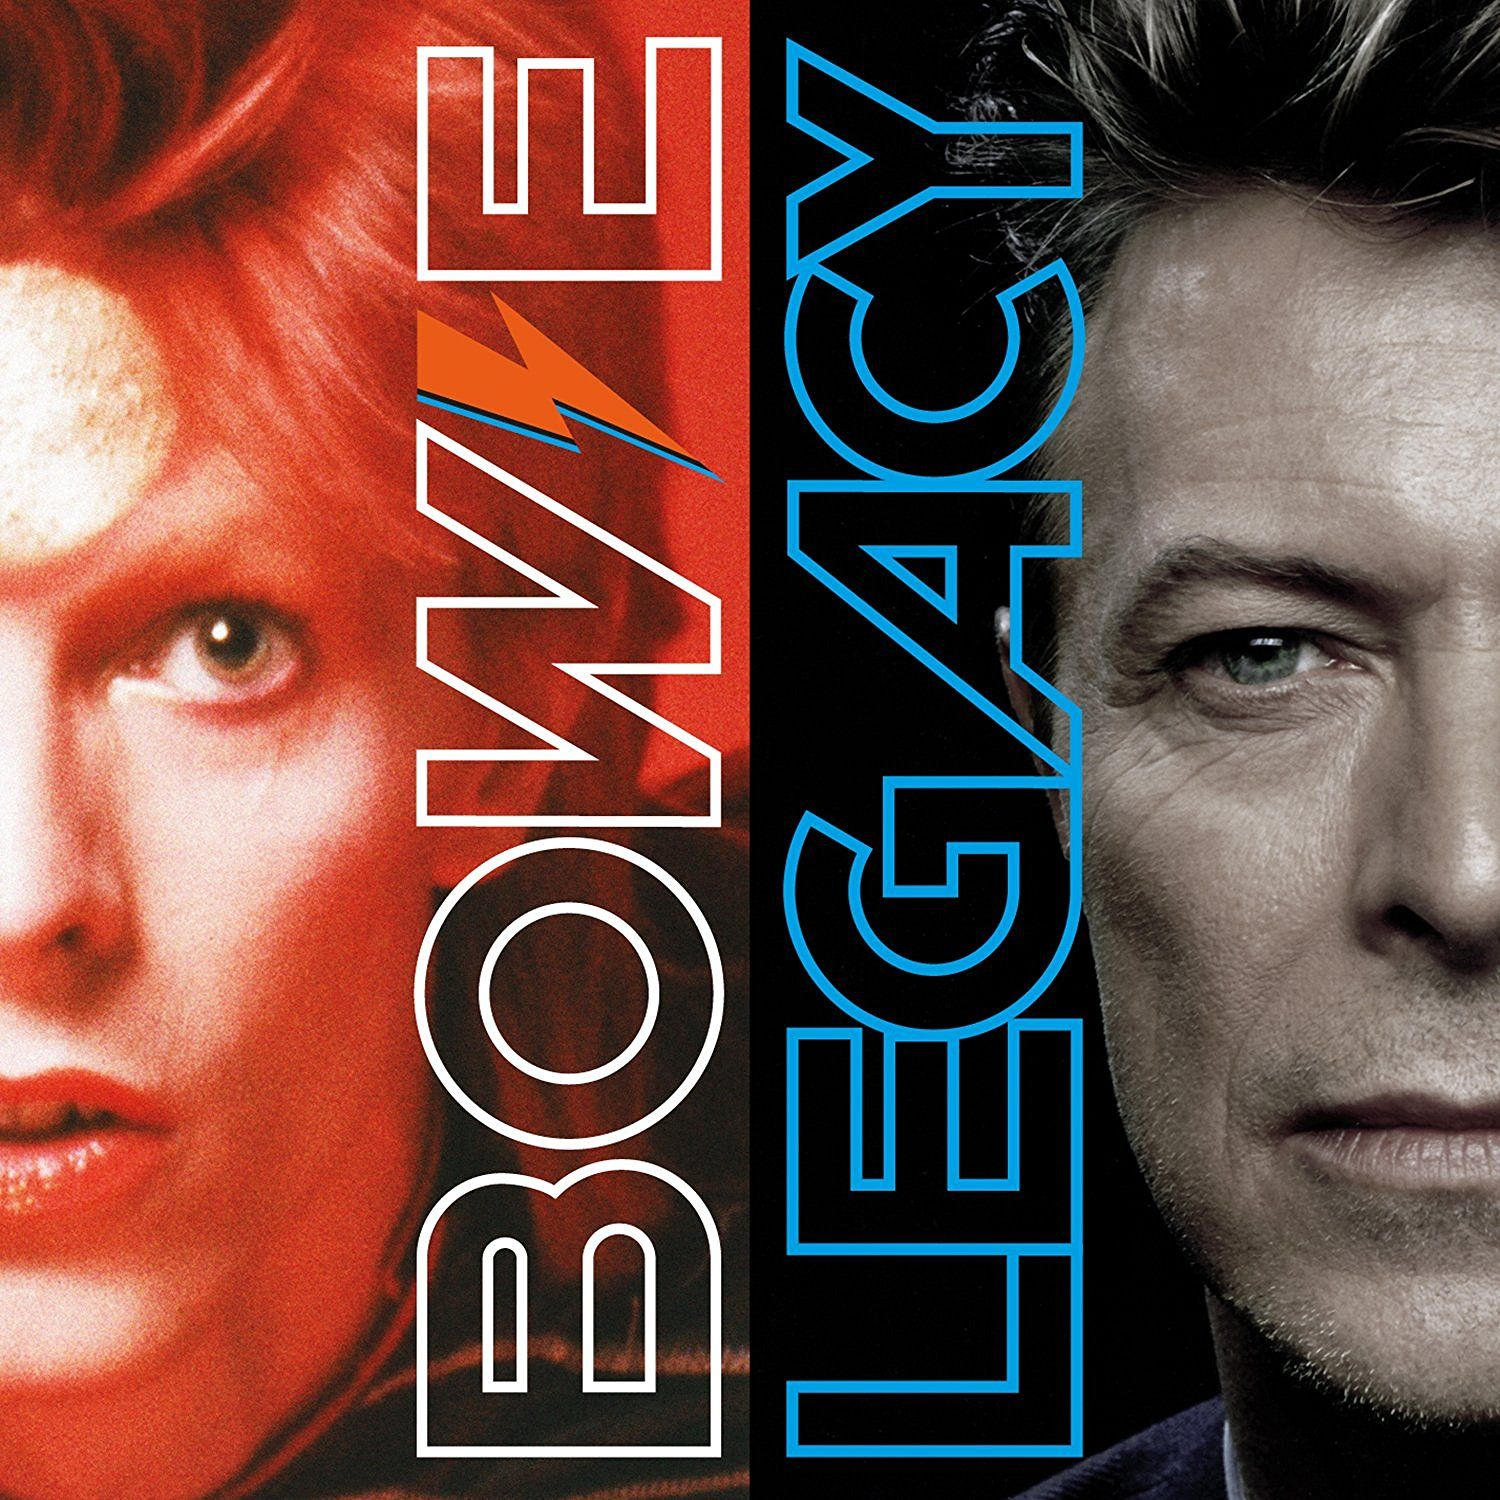 David Bowie - Legacy (The Very Best Of) album cover